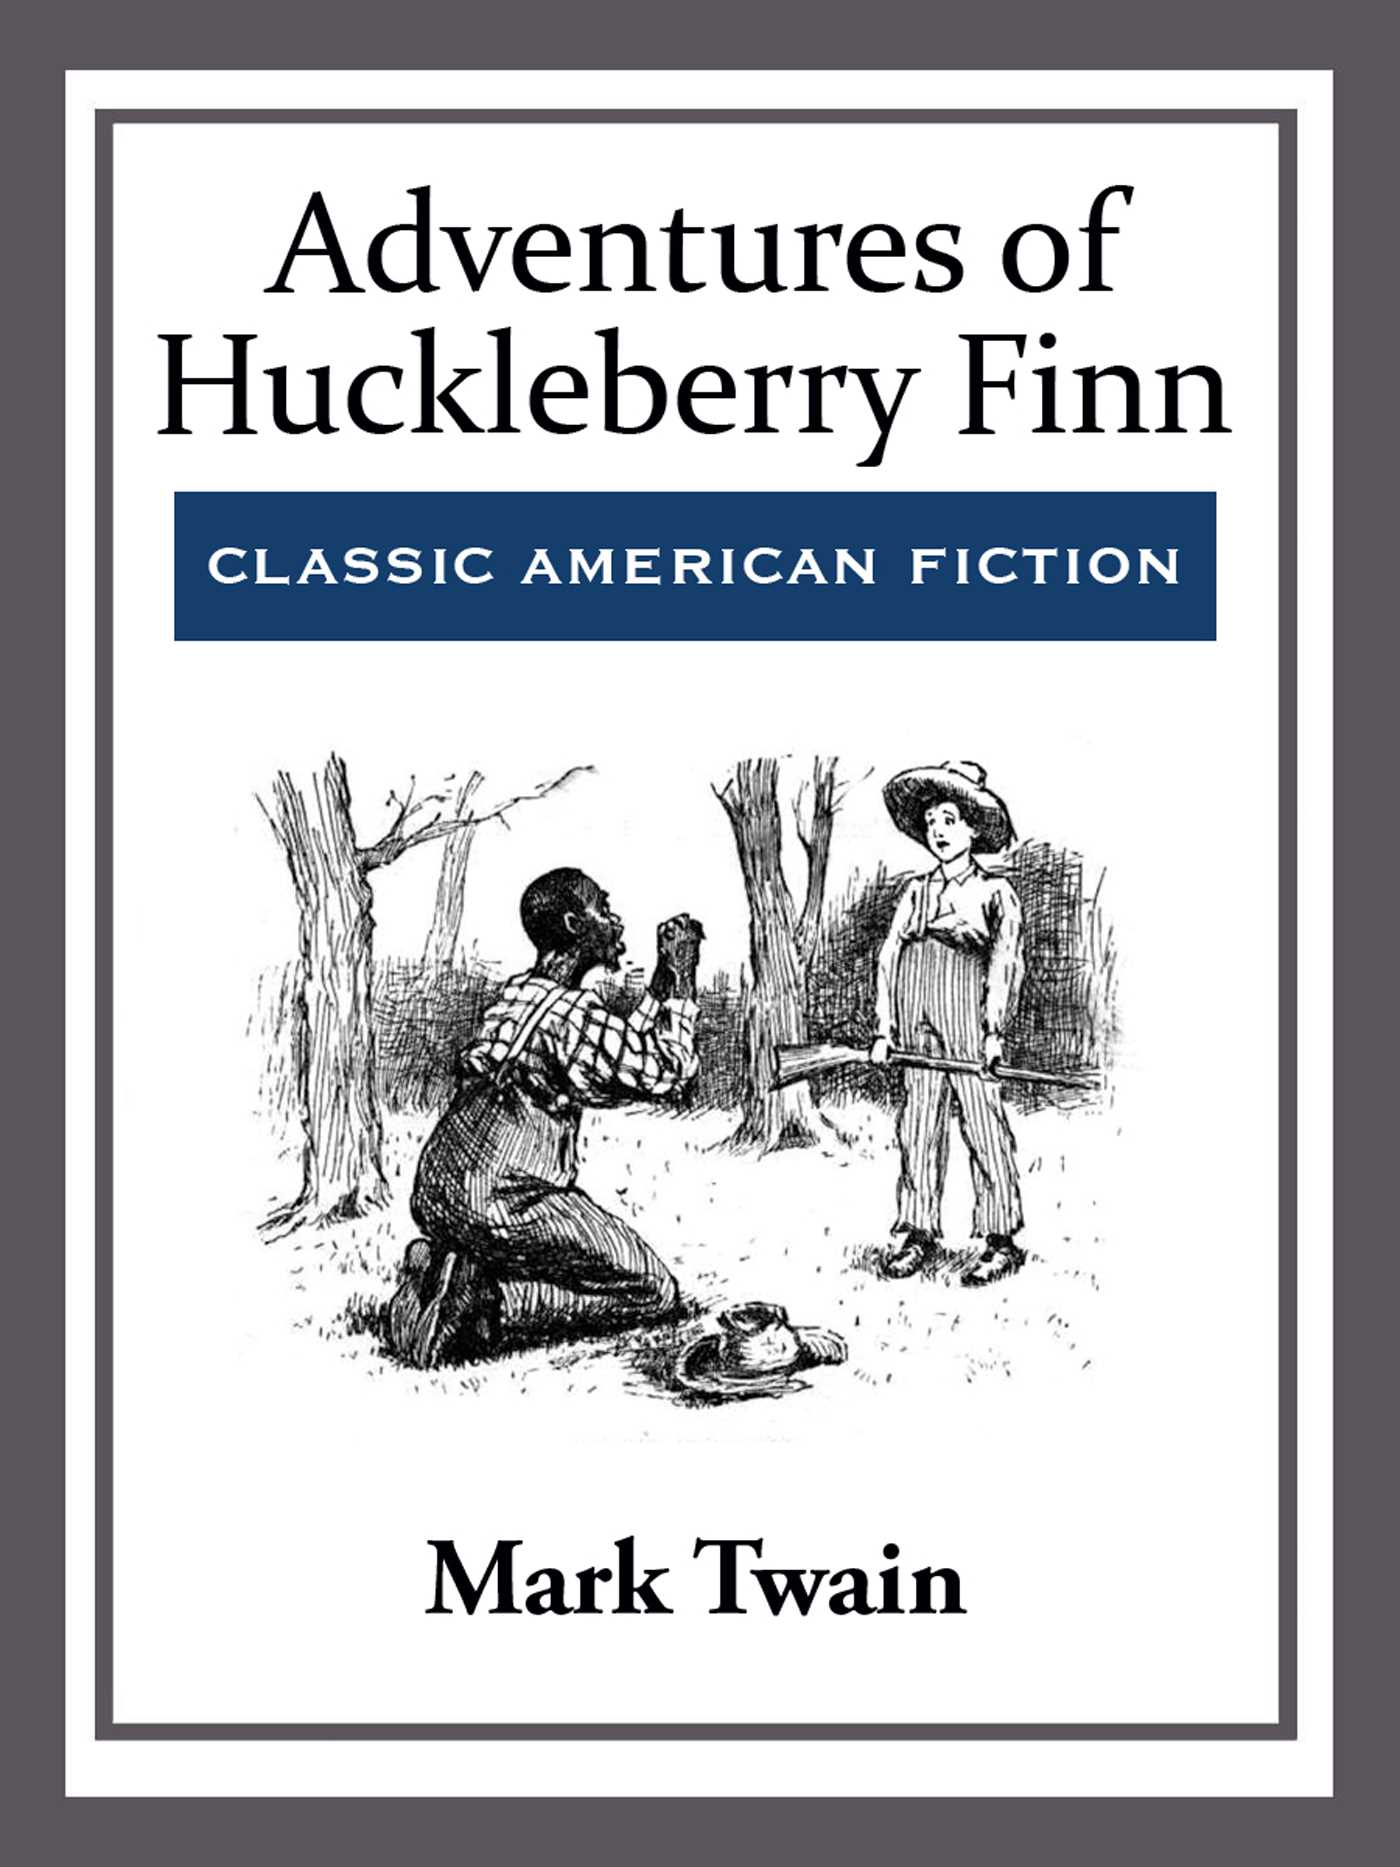 an analysis of main characters in the adventures of huckleberry finn by mark twain A list of all the characters in the adventures of huckleberry finn the the adventures of huckleberry finn characters adventures of huckleberry finn mark twain.